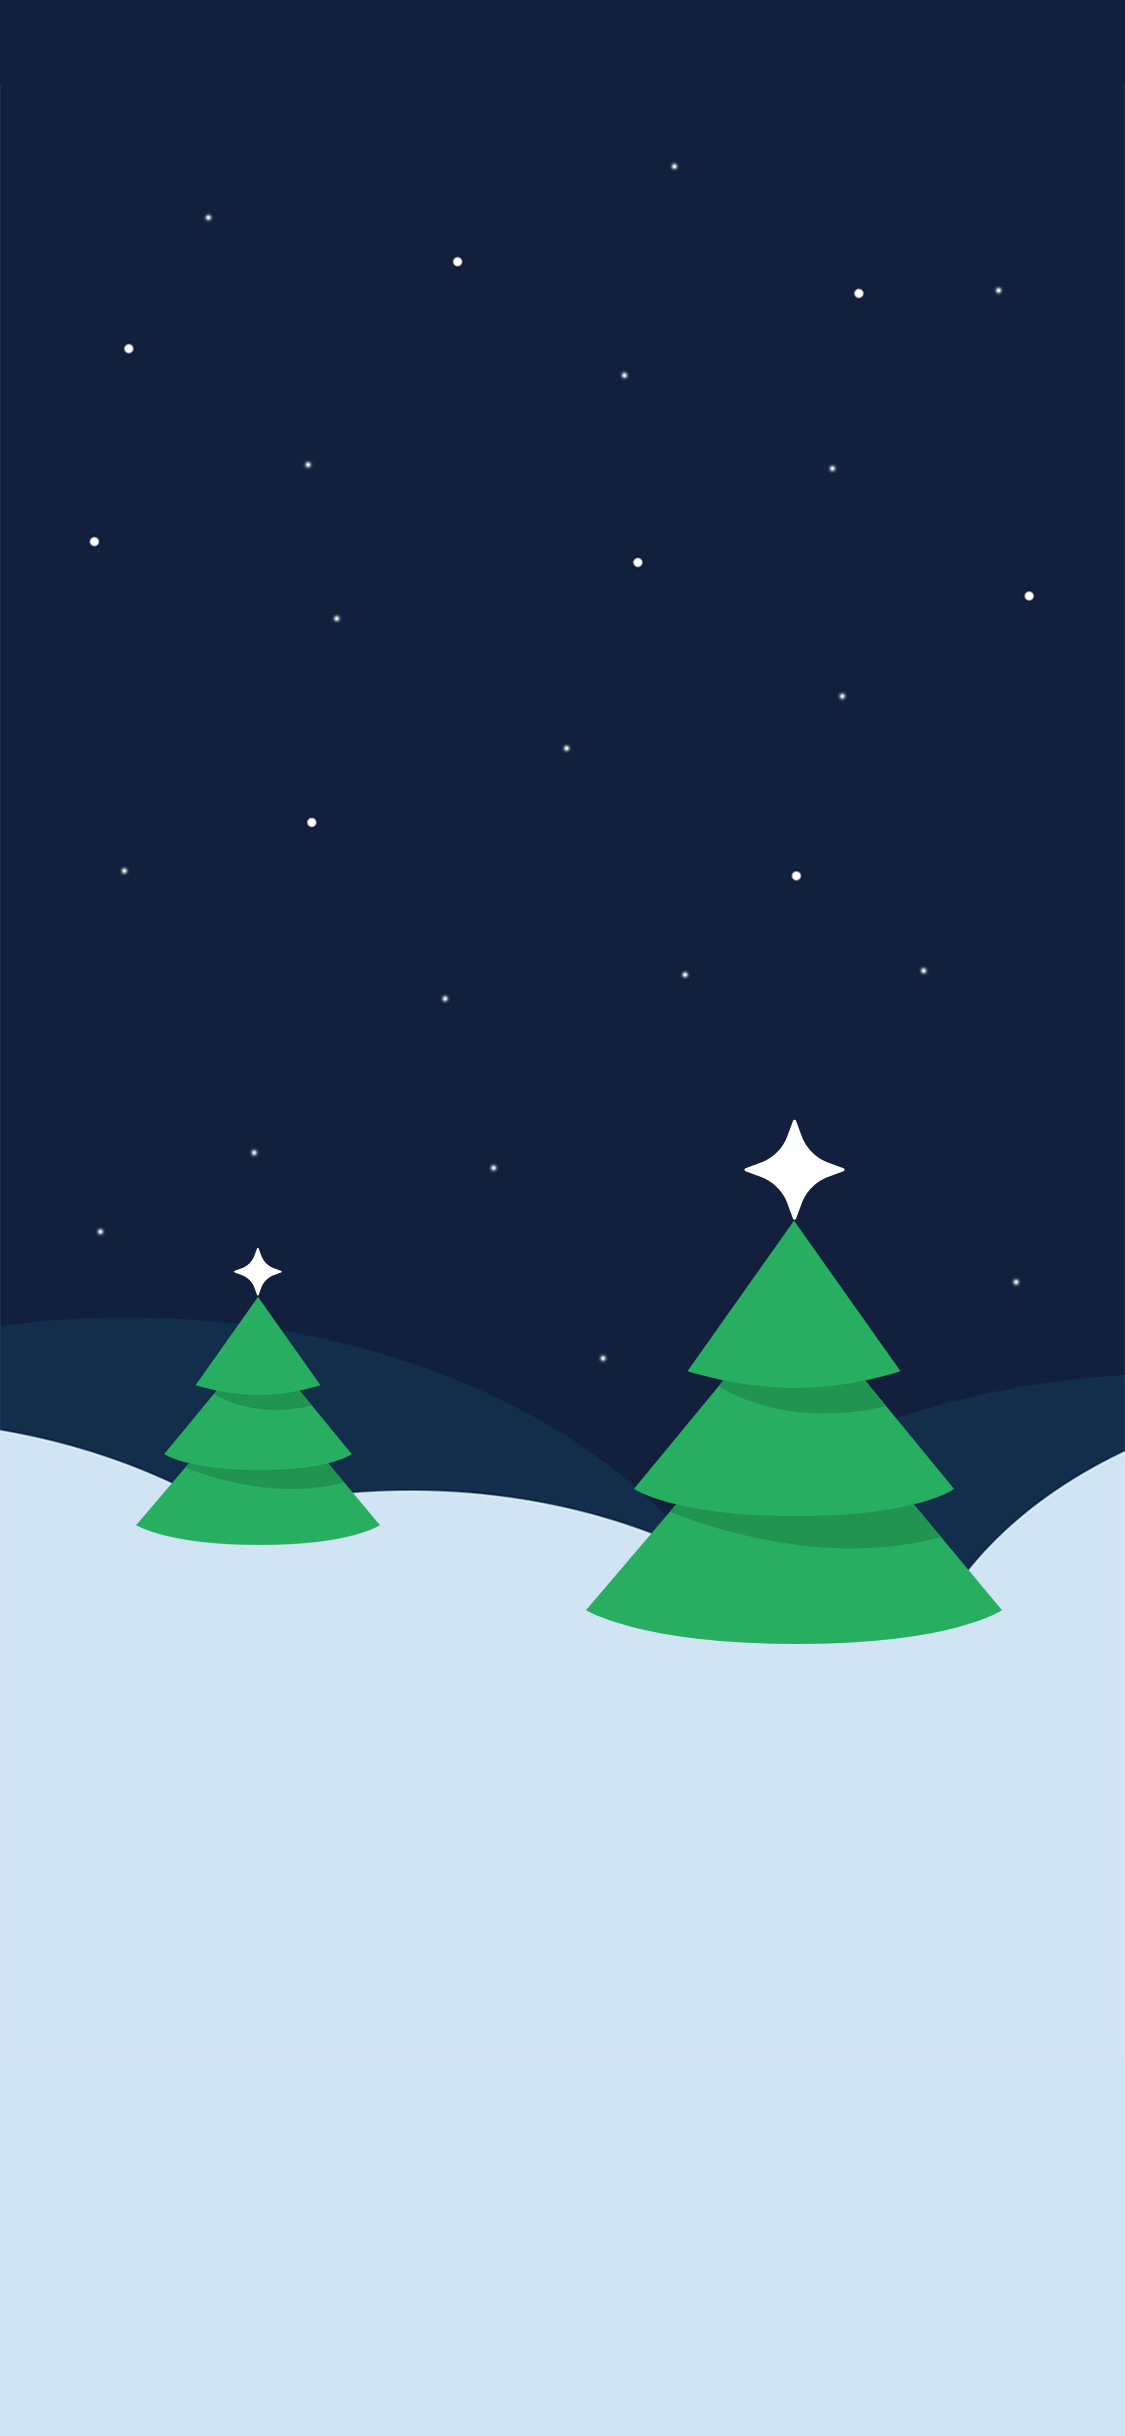 1125x2436 - Wallpaper for Christmas 49